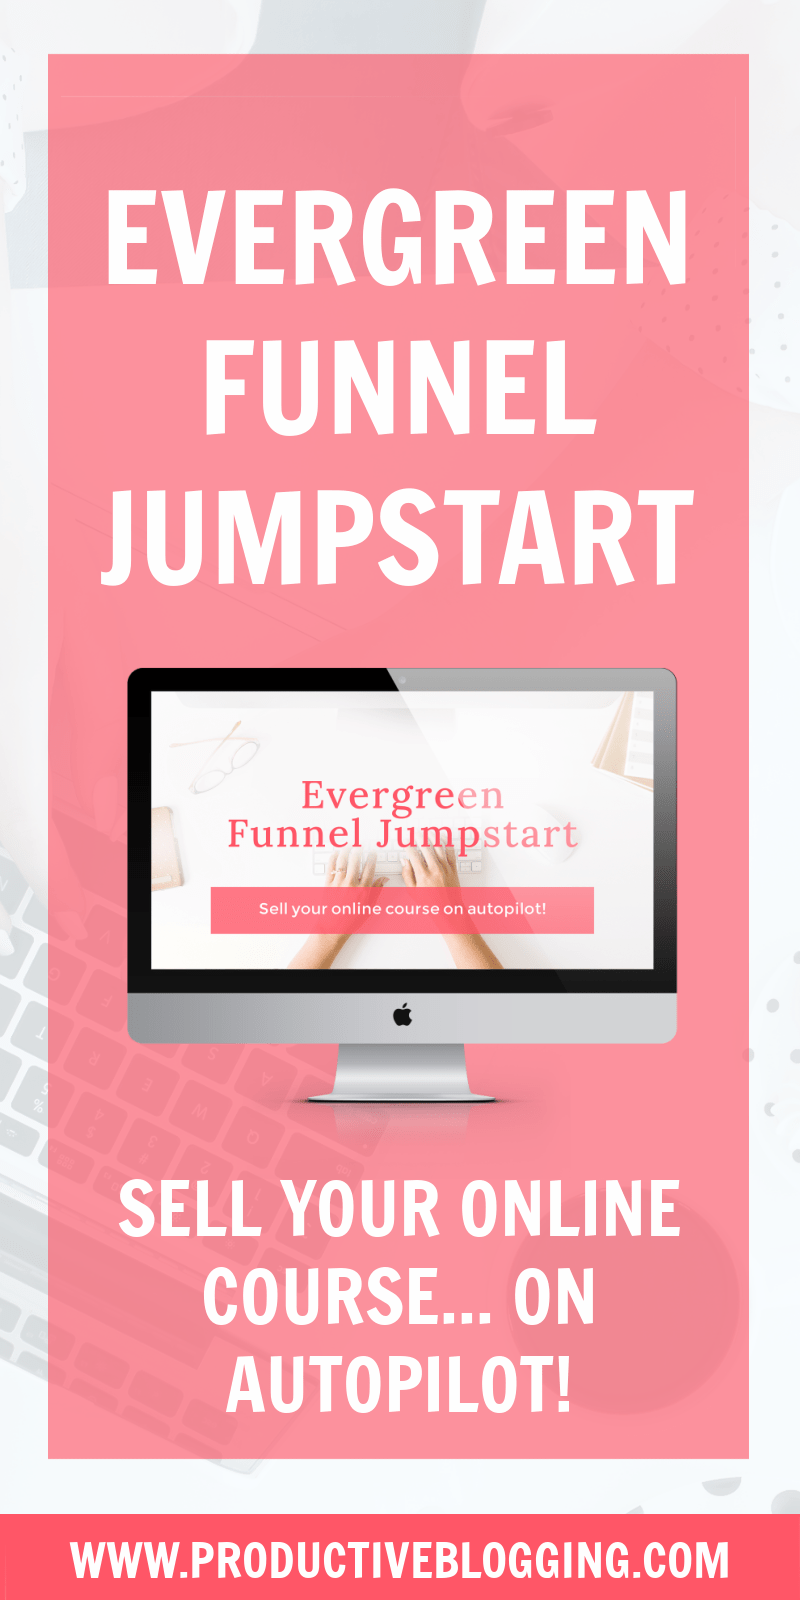 What if there was a way to ensure every new subscriber got their own personalized 'launch week'? And what if it was possible to put that on autopilot so you could just sit back and watch while the sales roll in and your piggy bank fills up? WELL THERE IS! You can learn exactly how to do all of this in EVERGREEN FUNNEL JUMPSTART! #onlinecourse #digitalcourse #salesfunnel #evergreenfunnel #evergreensalesfunnel #evergreensalessequence #deadlinefunnel #evergreenfunneljumpstart #productiveblogging